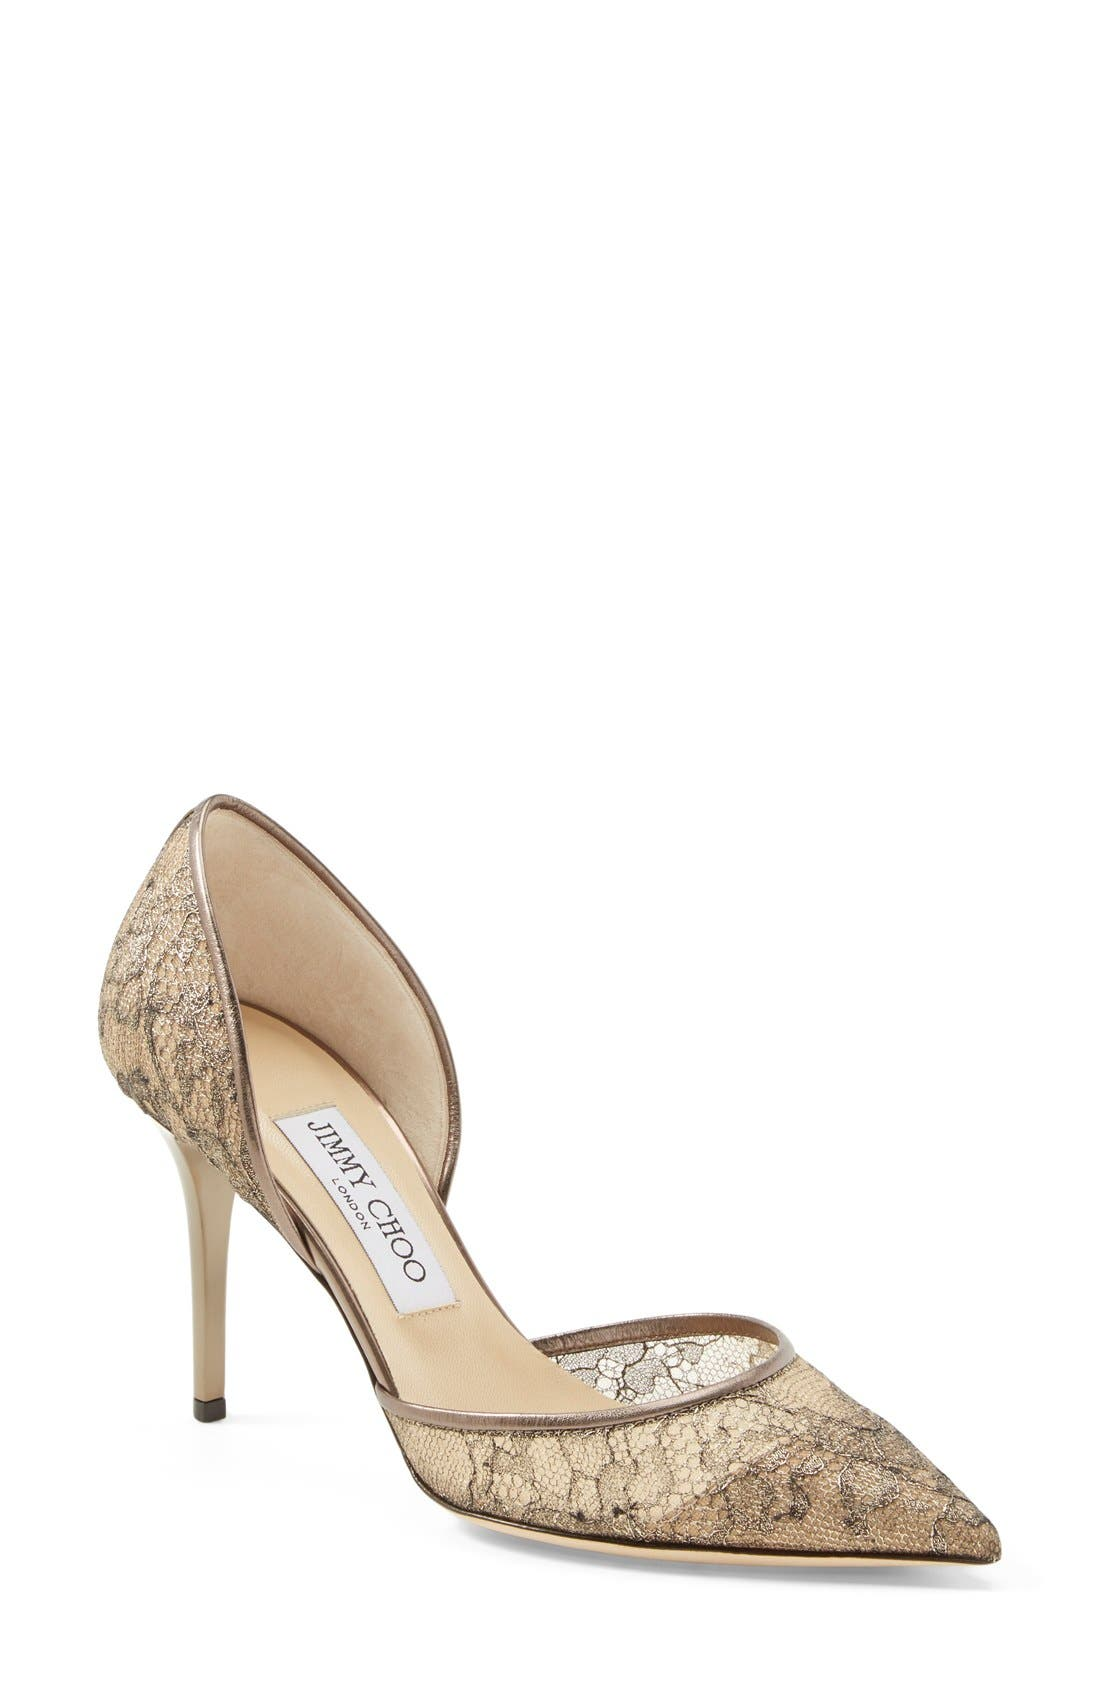 'Addison' d'Orsay Pump,                         Main,                         color, 220